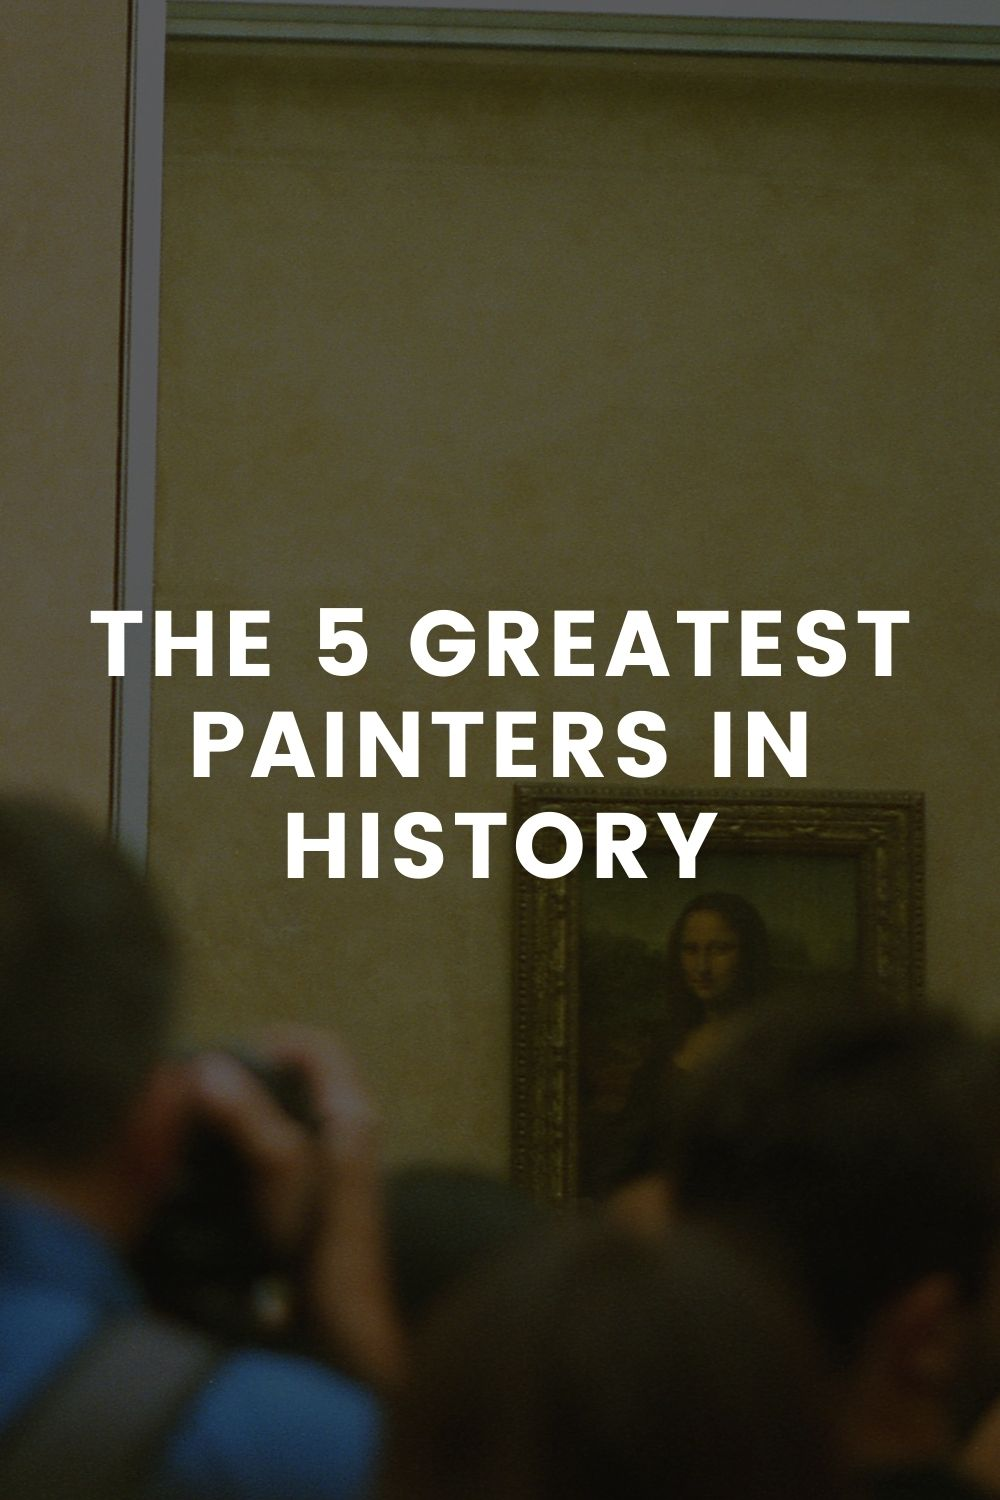 The 5 Greatest Painters in History